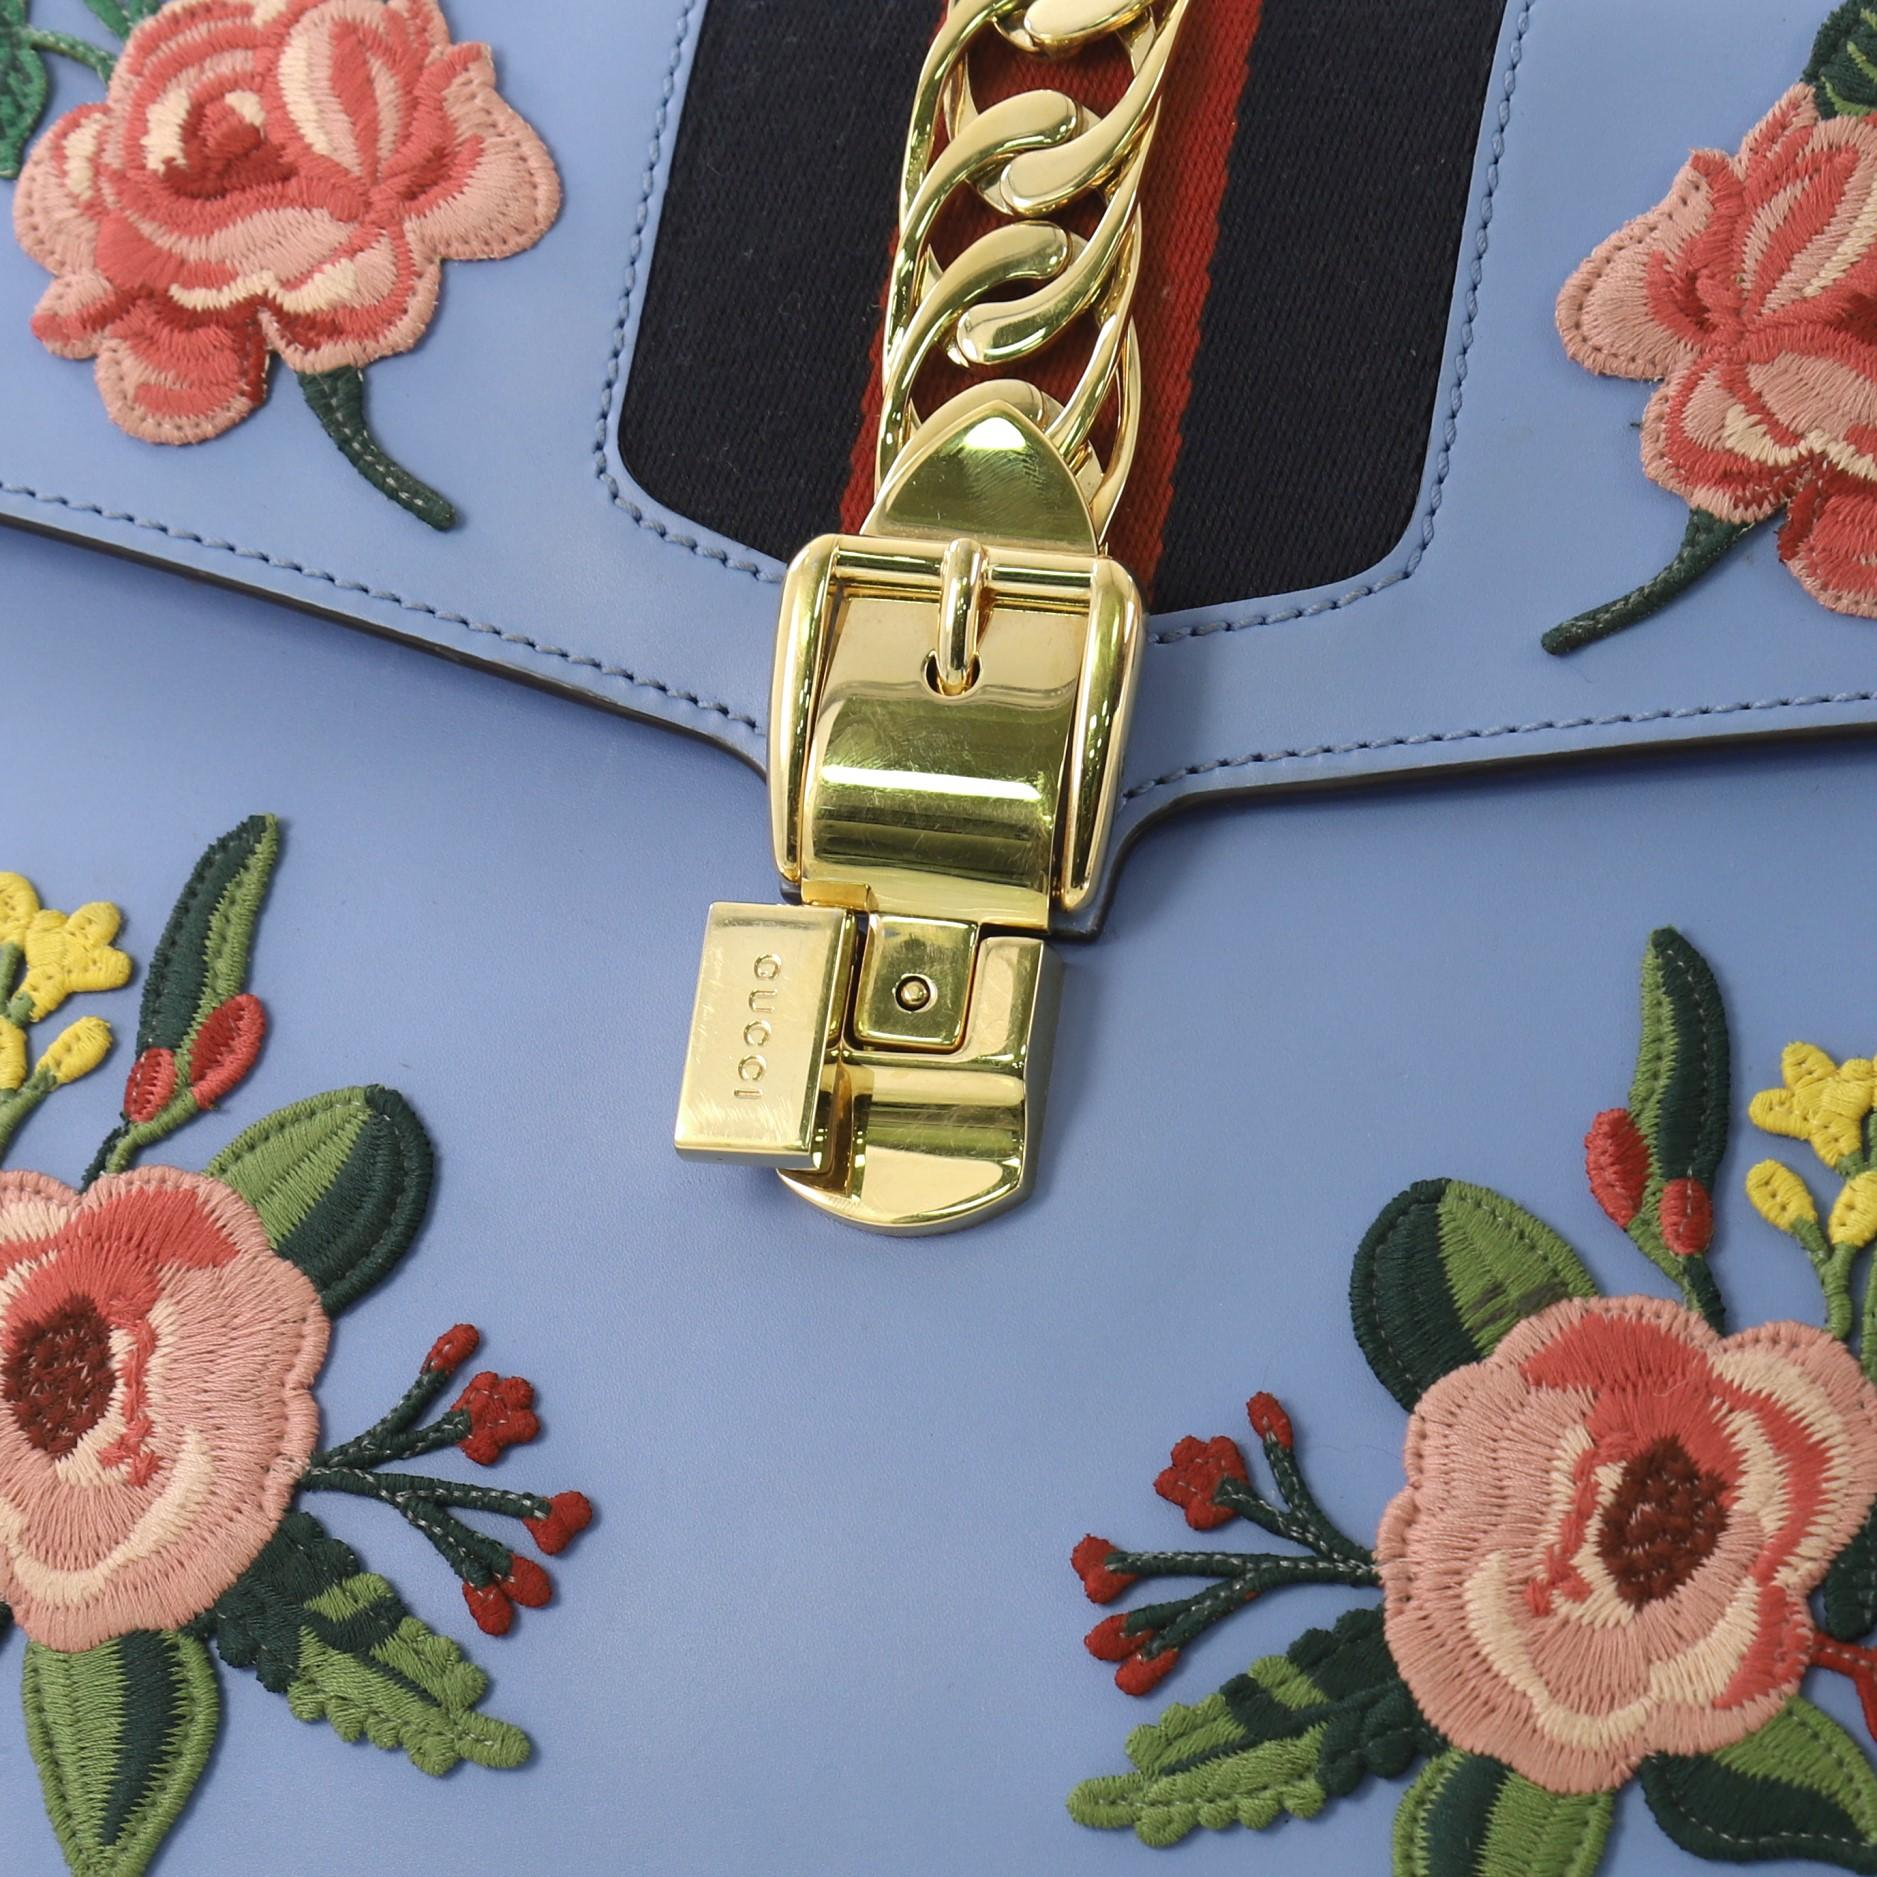 7be0e9c312d Gucci Sylvie Top Handle Bag Embroidered Leather Medium For Sale at 1stdibs